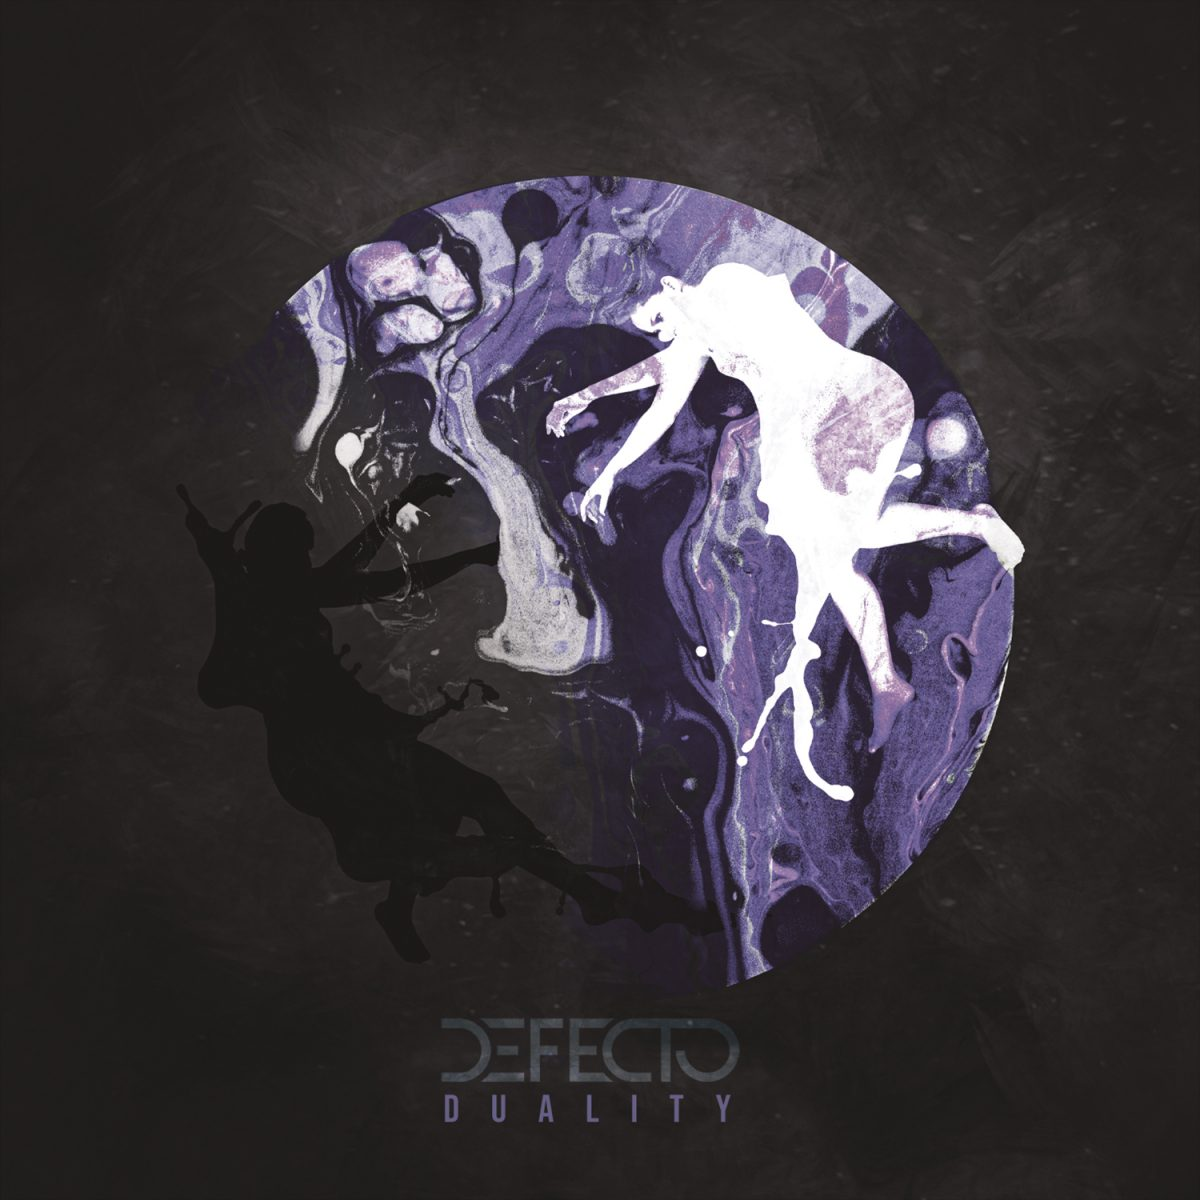 defecto-duality-album-review